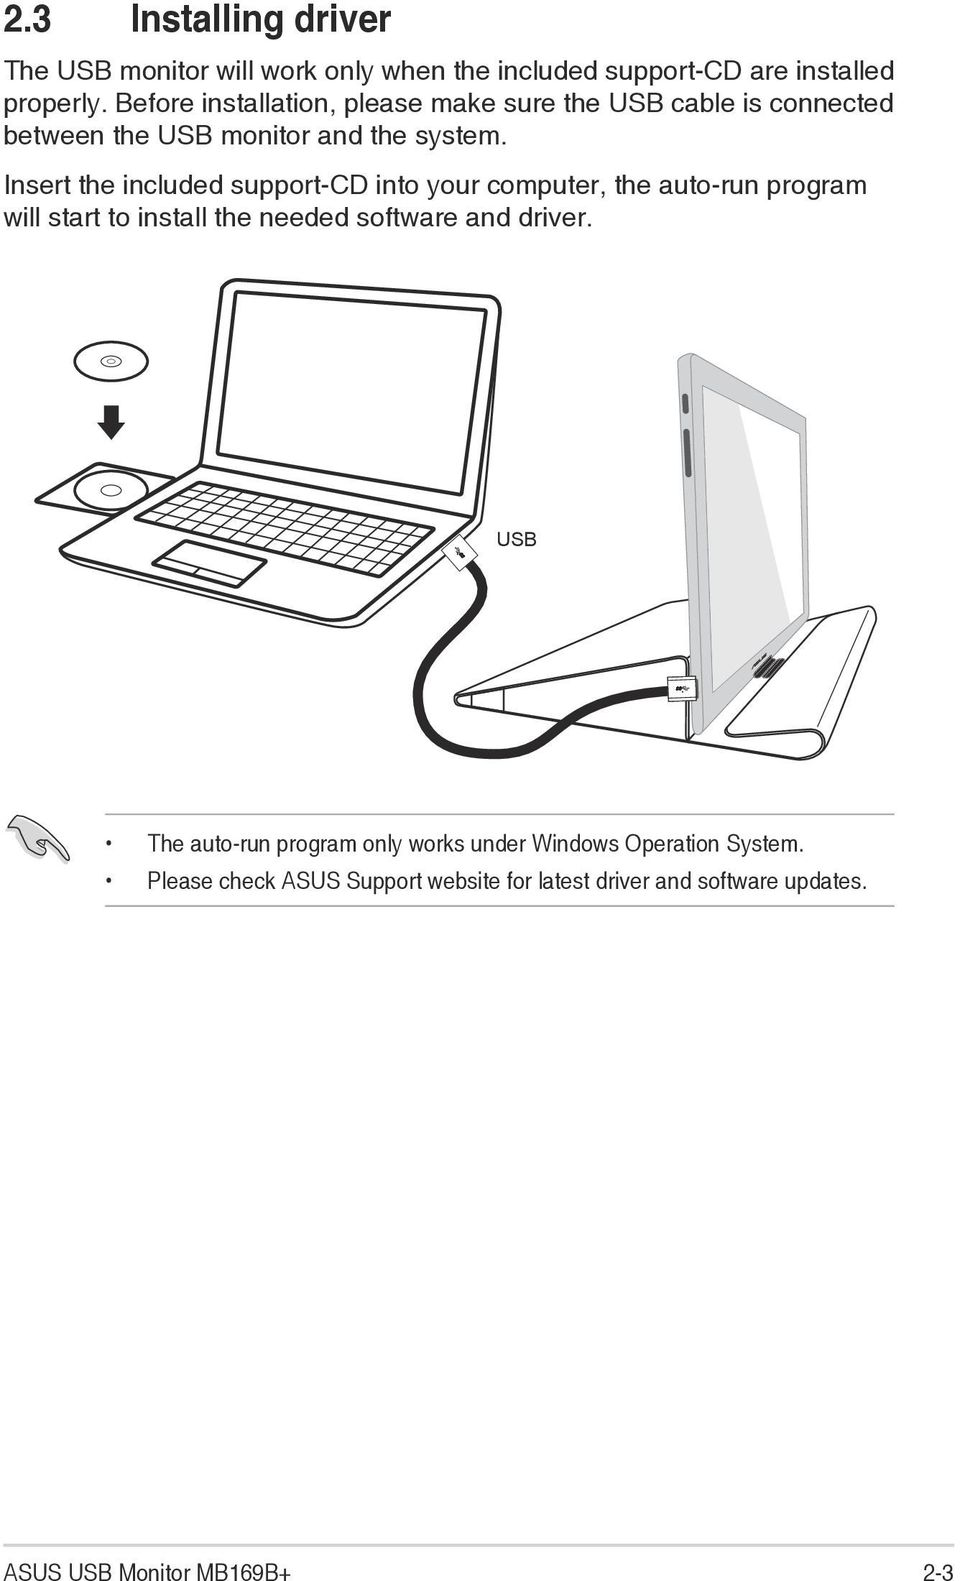 Insert the included support-cd into your computer, the auto-run program will start to install the needed software and driver.